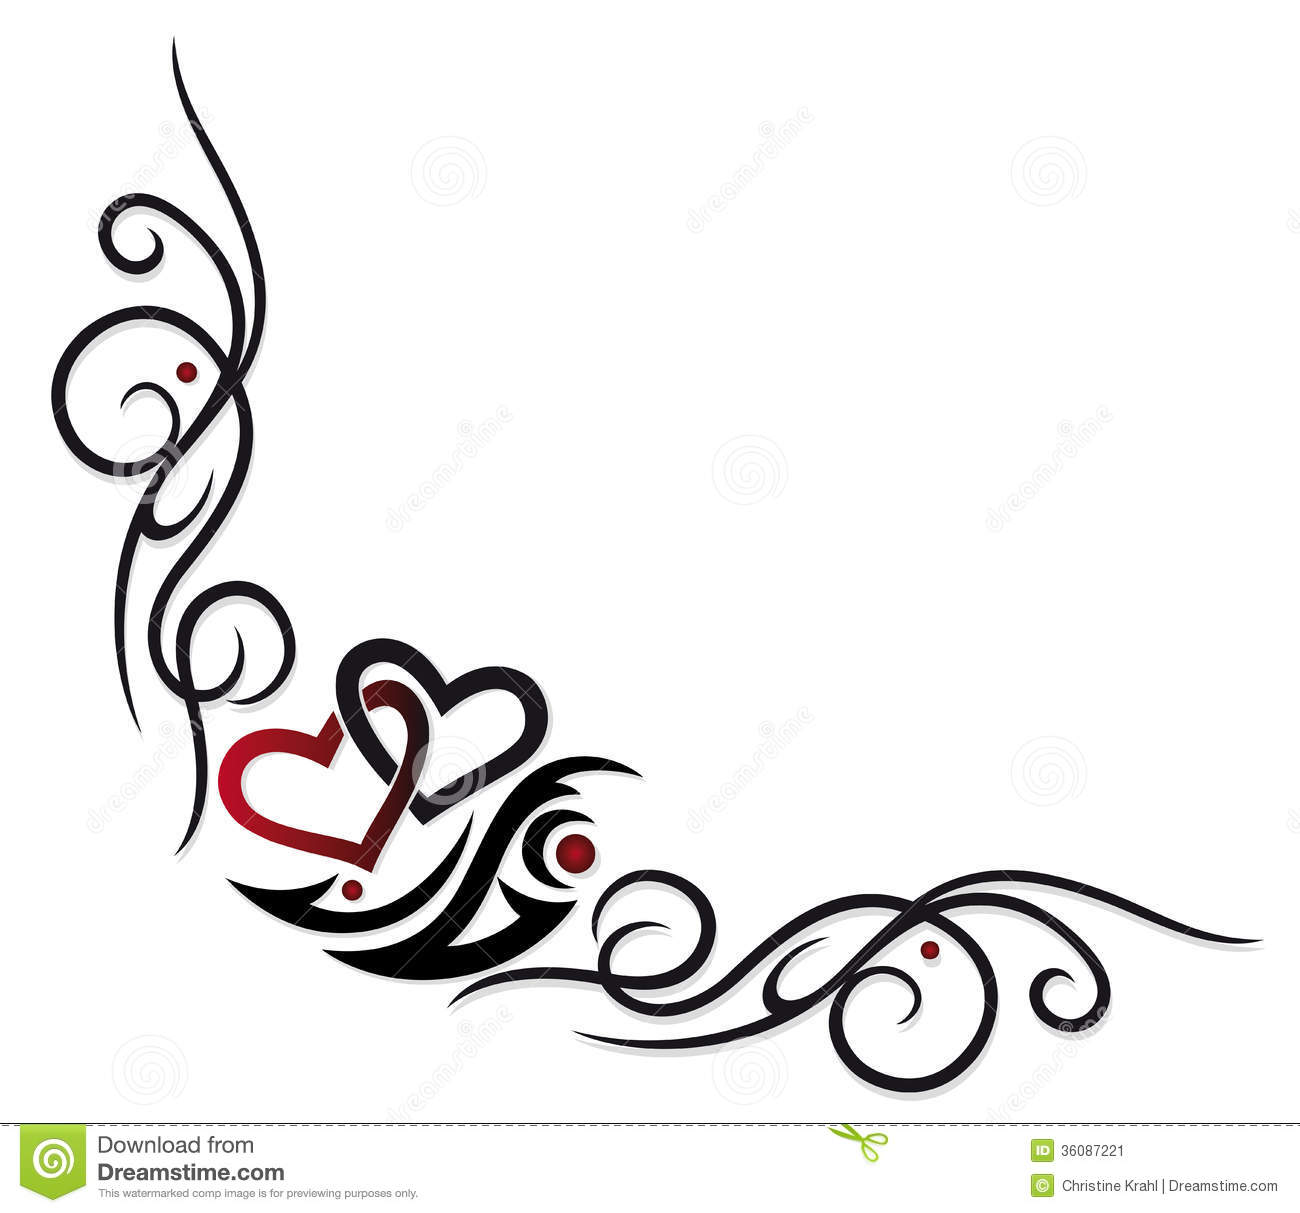 Valentines Day Hearts Border Clip Art - Viewing Gallery